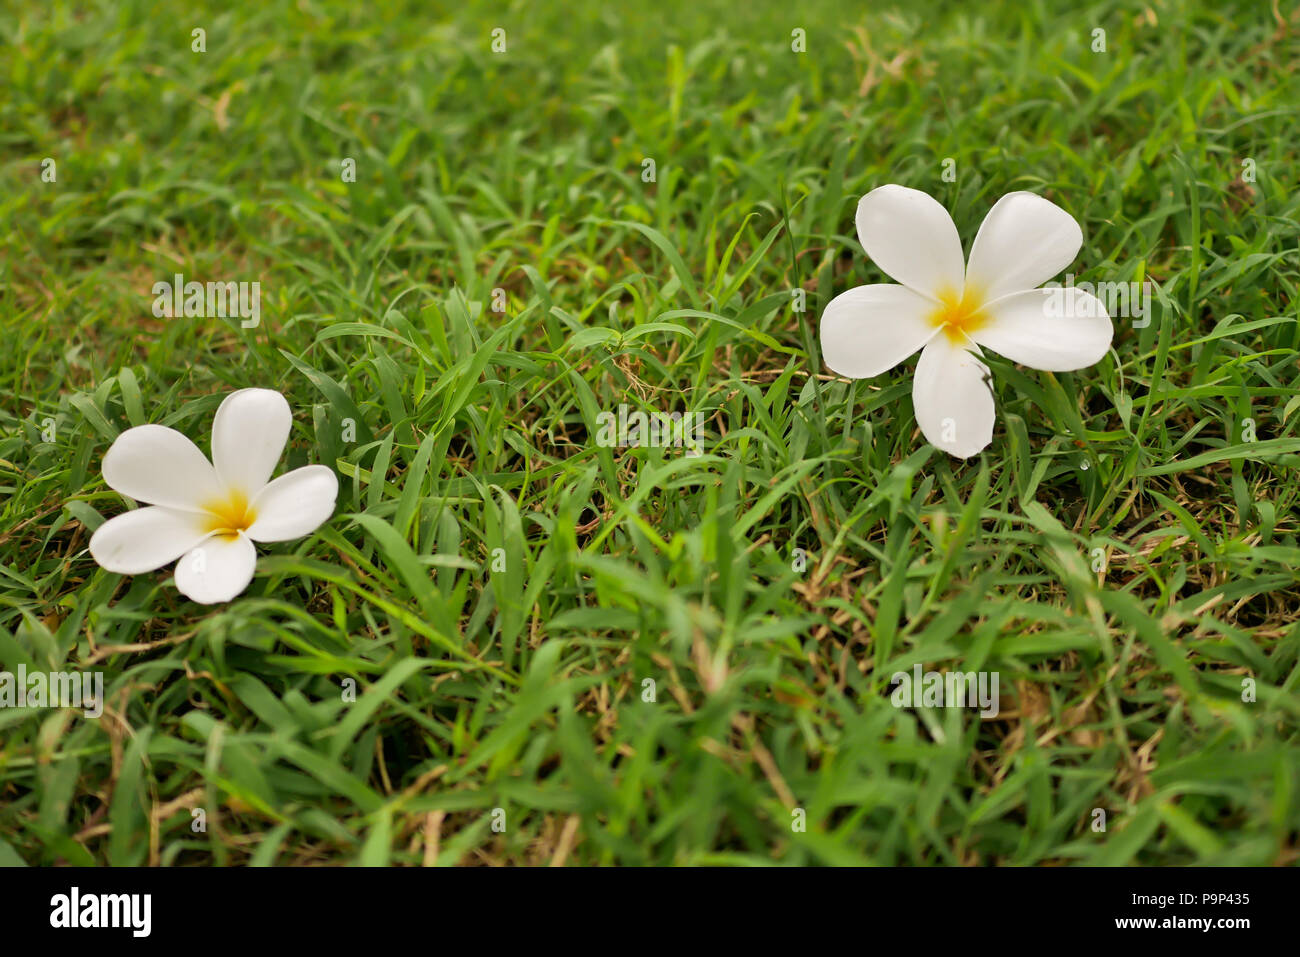 Two plumplaints fall on the green grass. Select focus shallow depth of field and blurred background with copy space - Stock Image